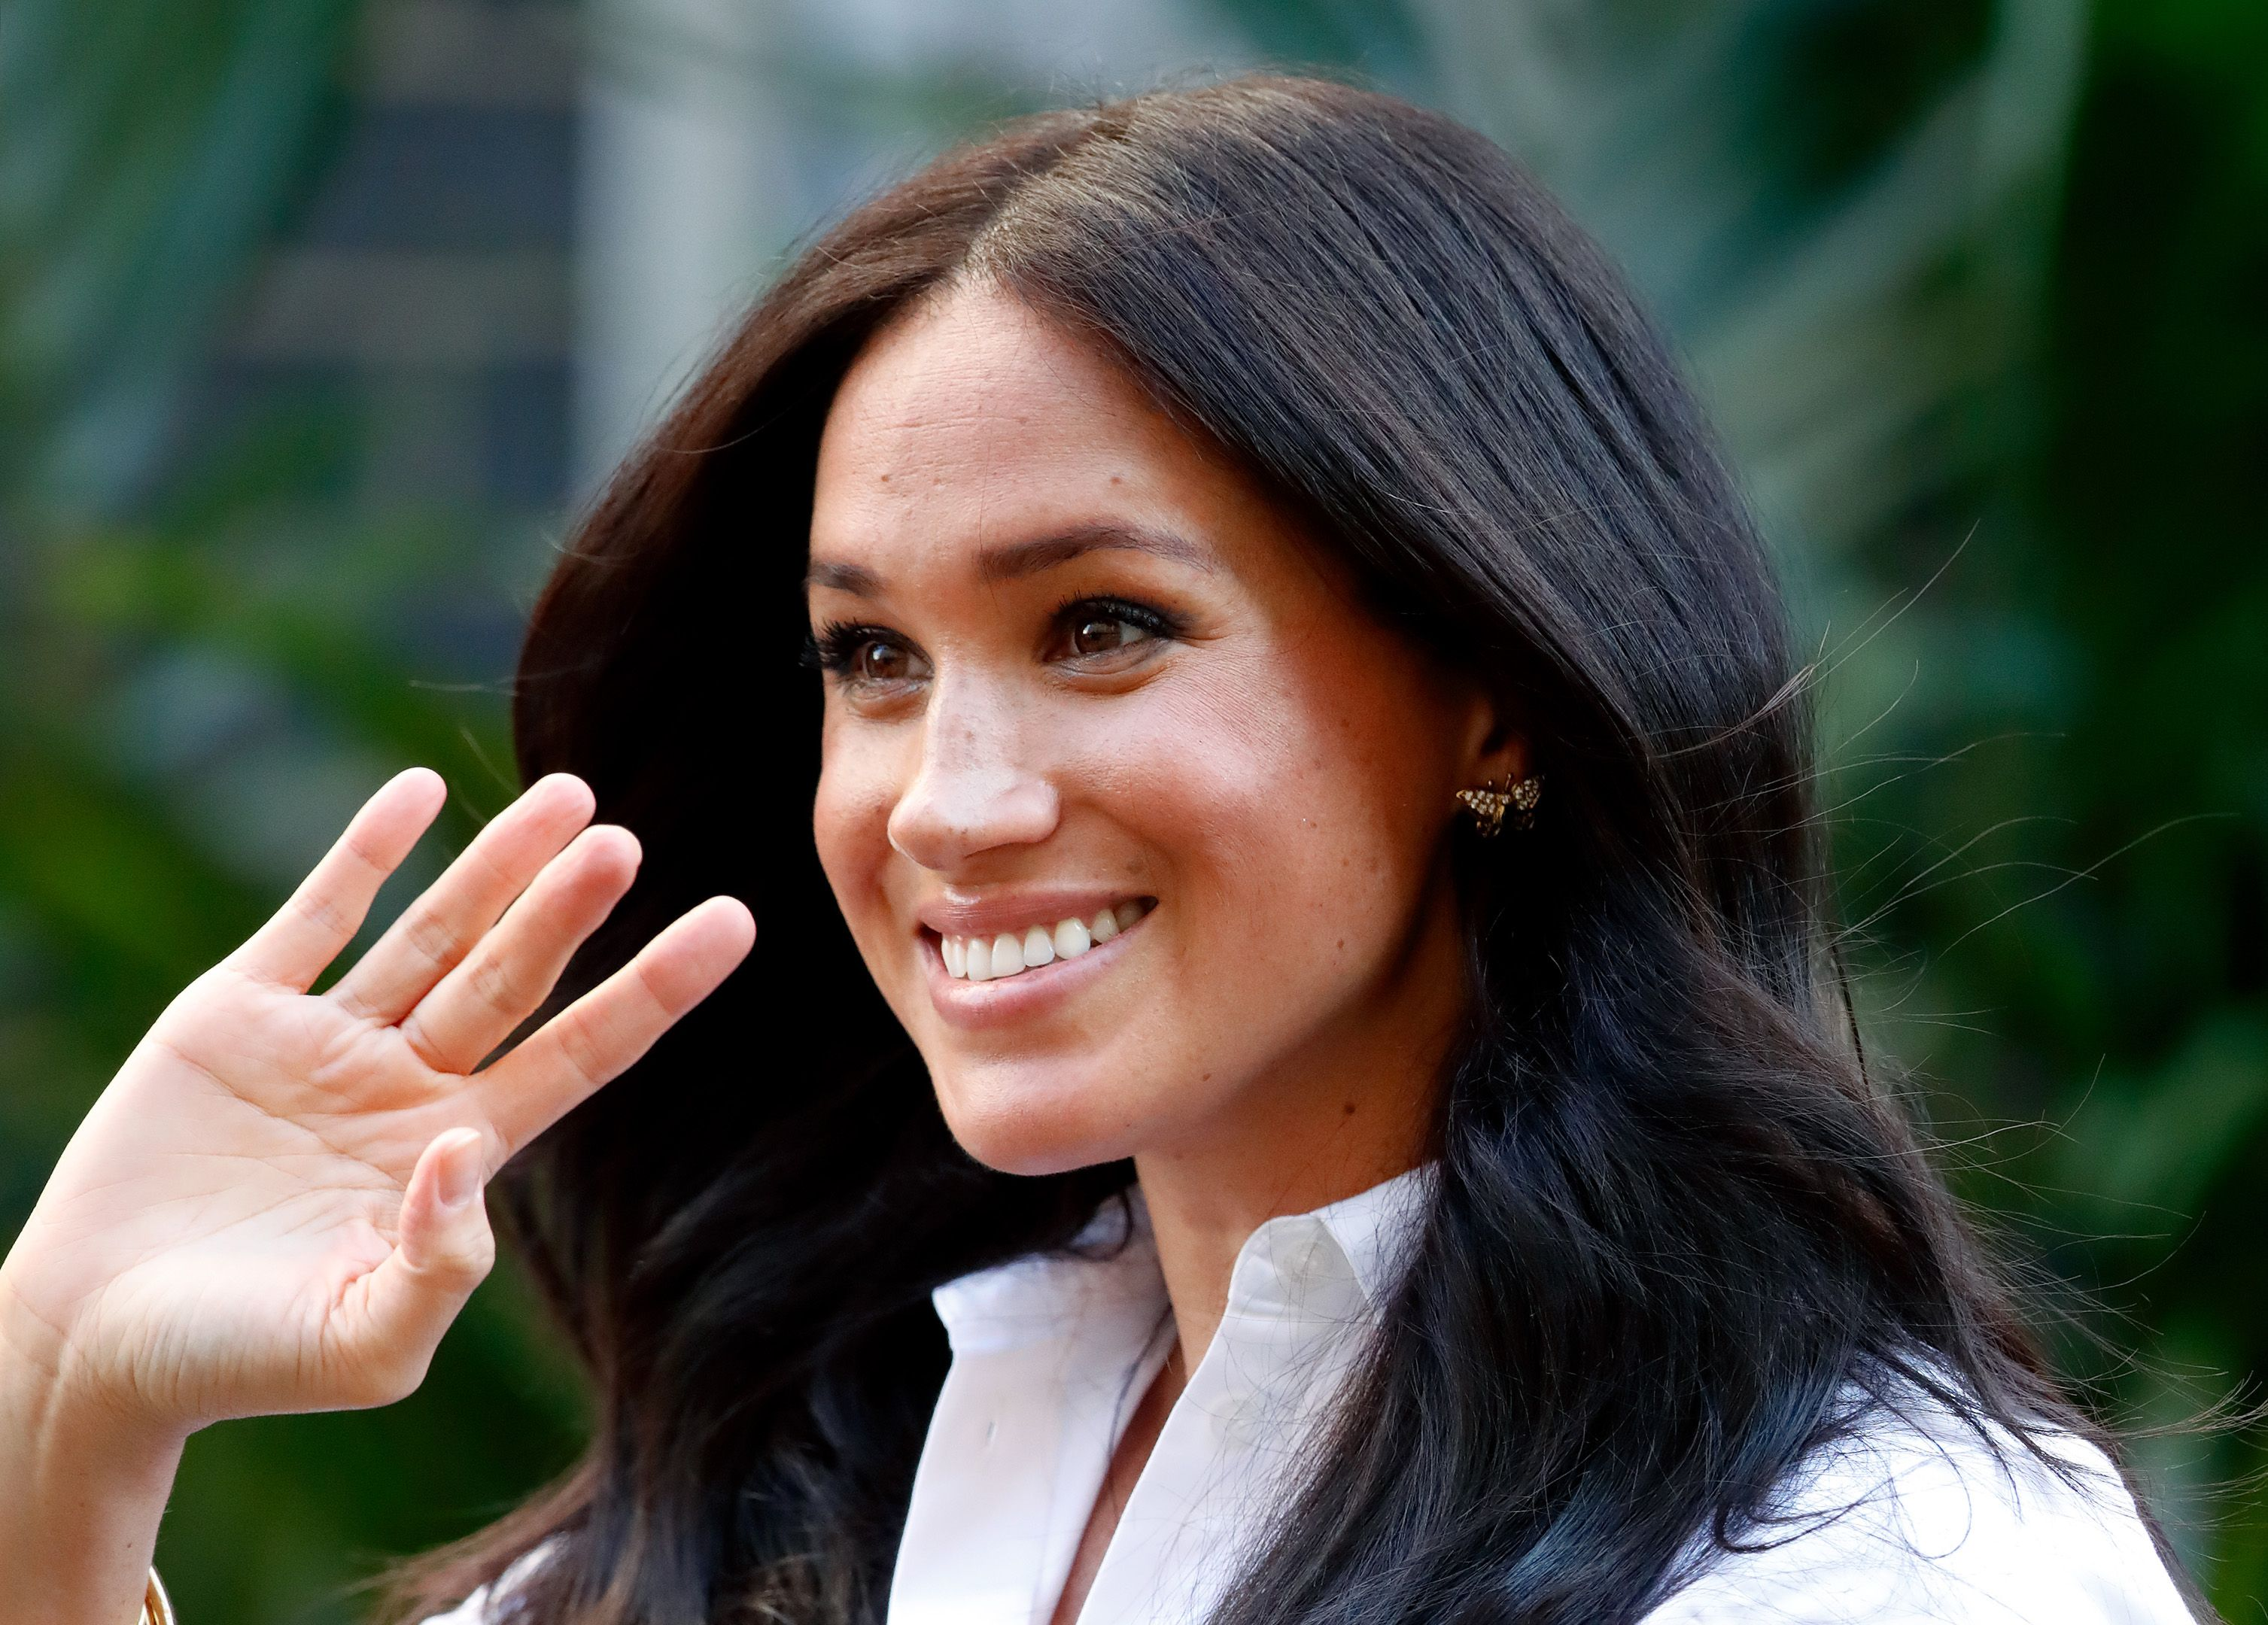 Meghan Markle's Entire Outfit for Her Secret Trip to Luminary Bakery Is Shoppable